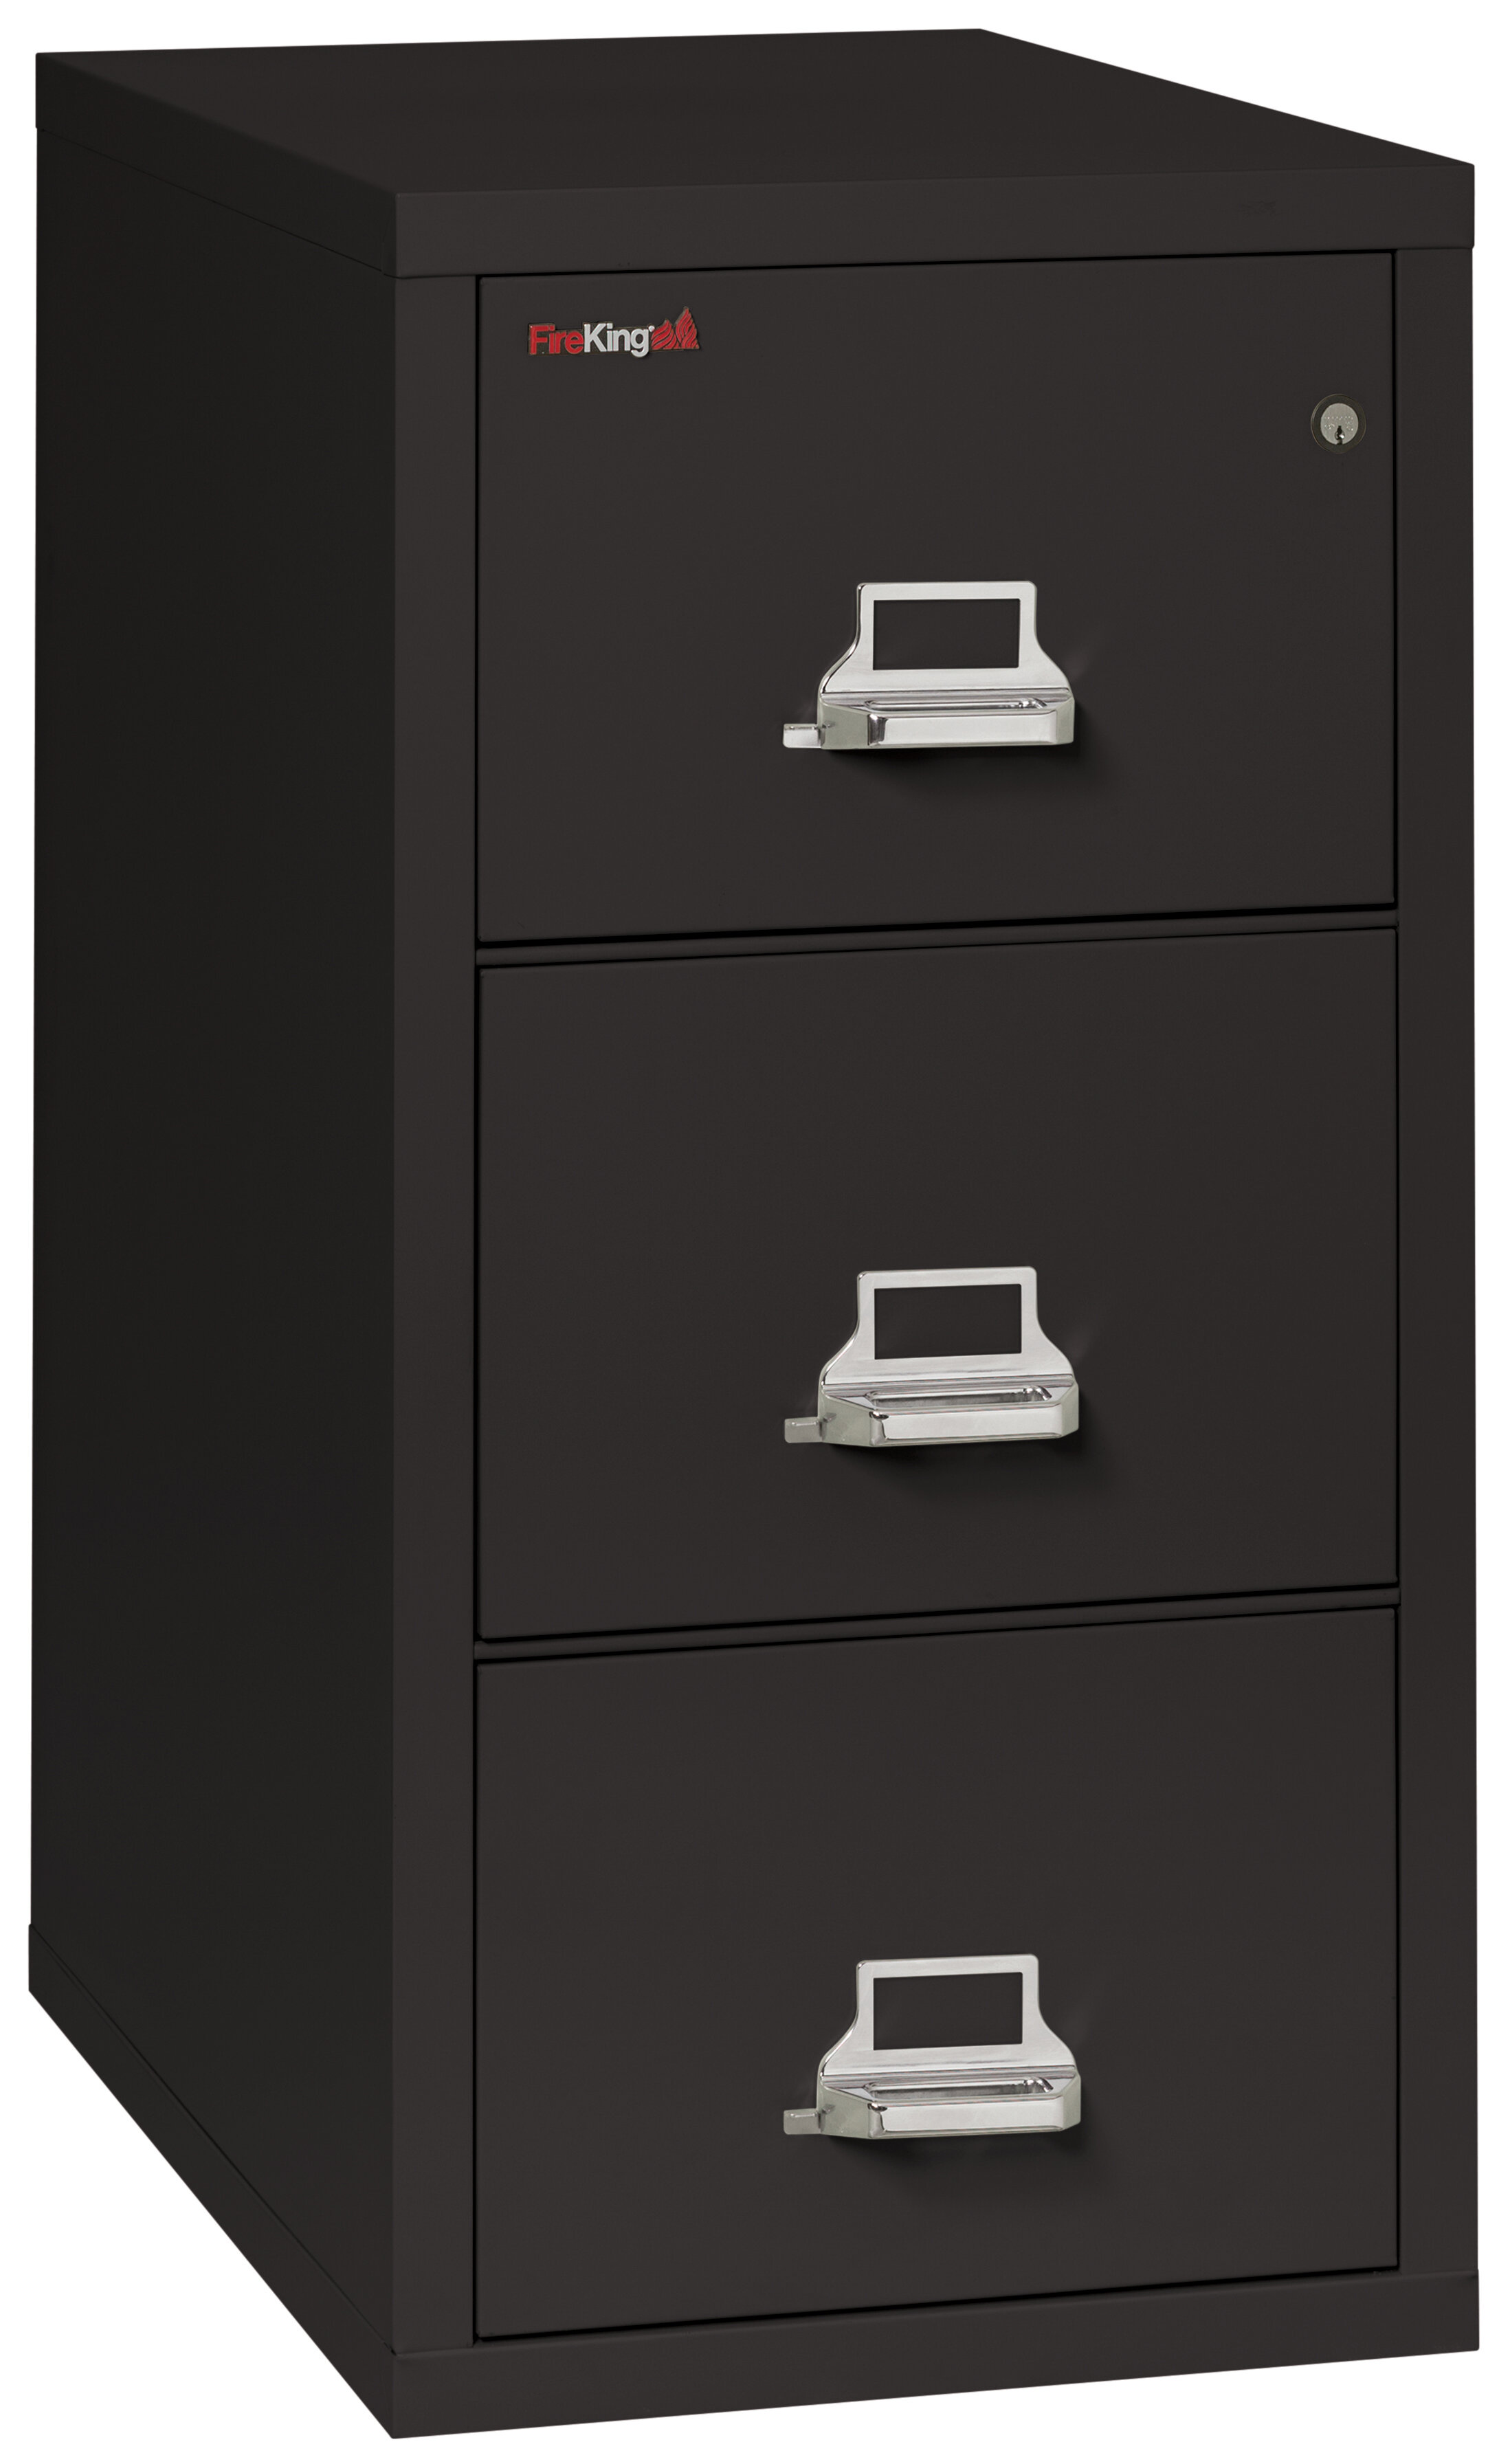 Fireproof 34-Drawer Vertical File Cabinet